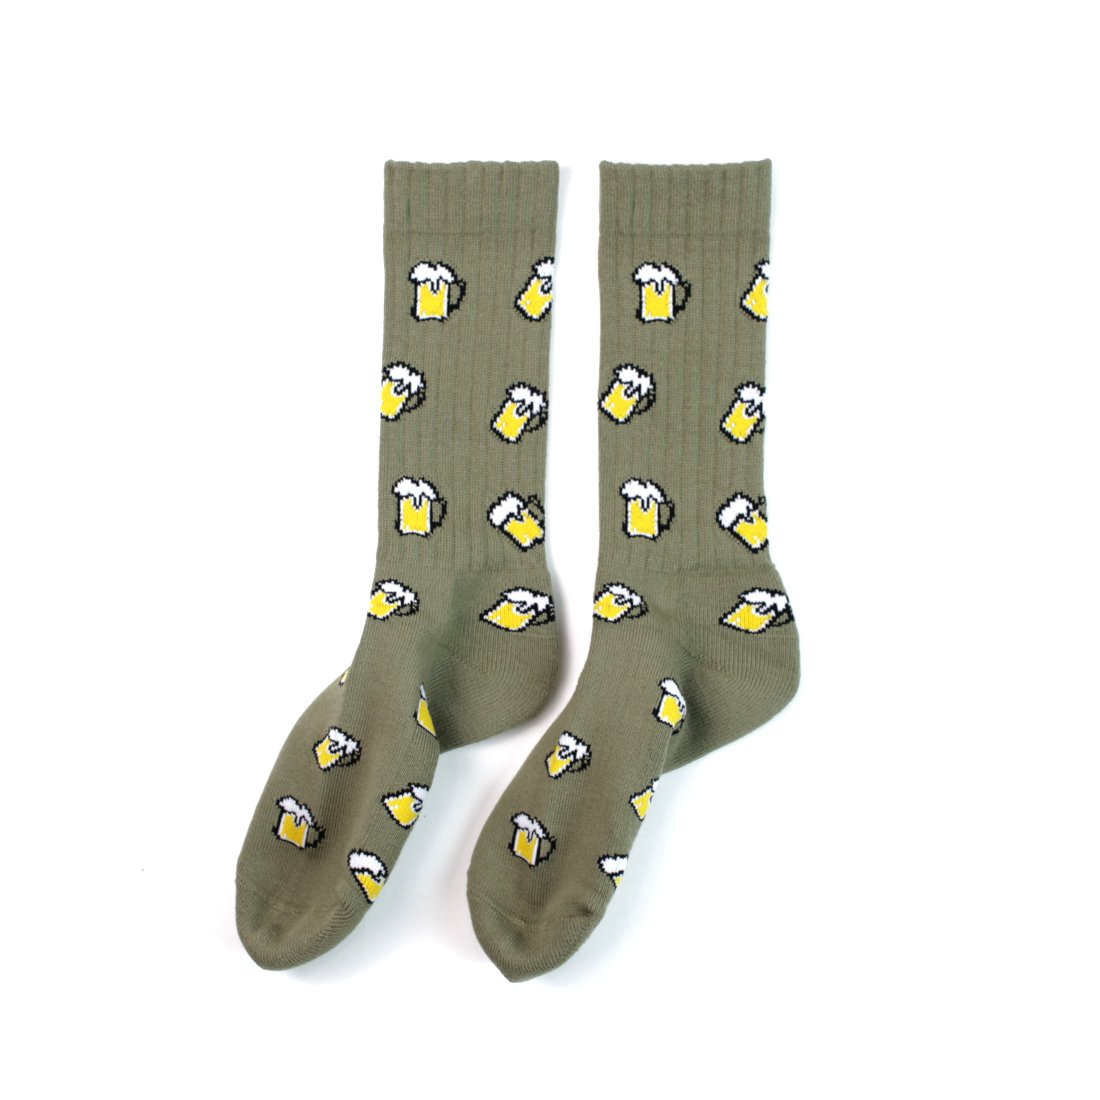 【Easy Miss × Ching & Co】Beer Socks - Moss Green